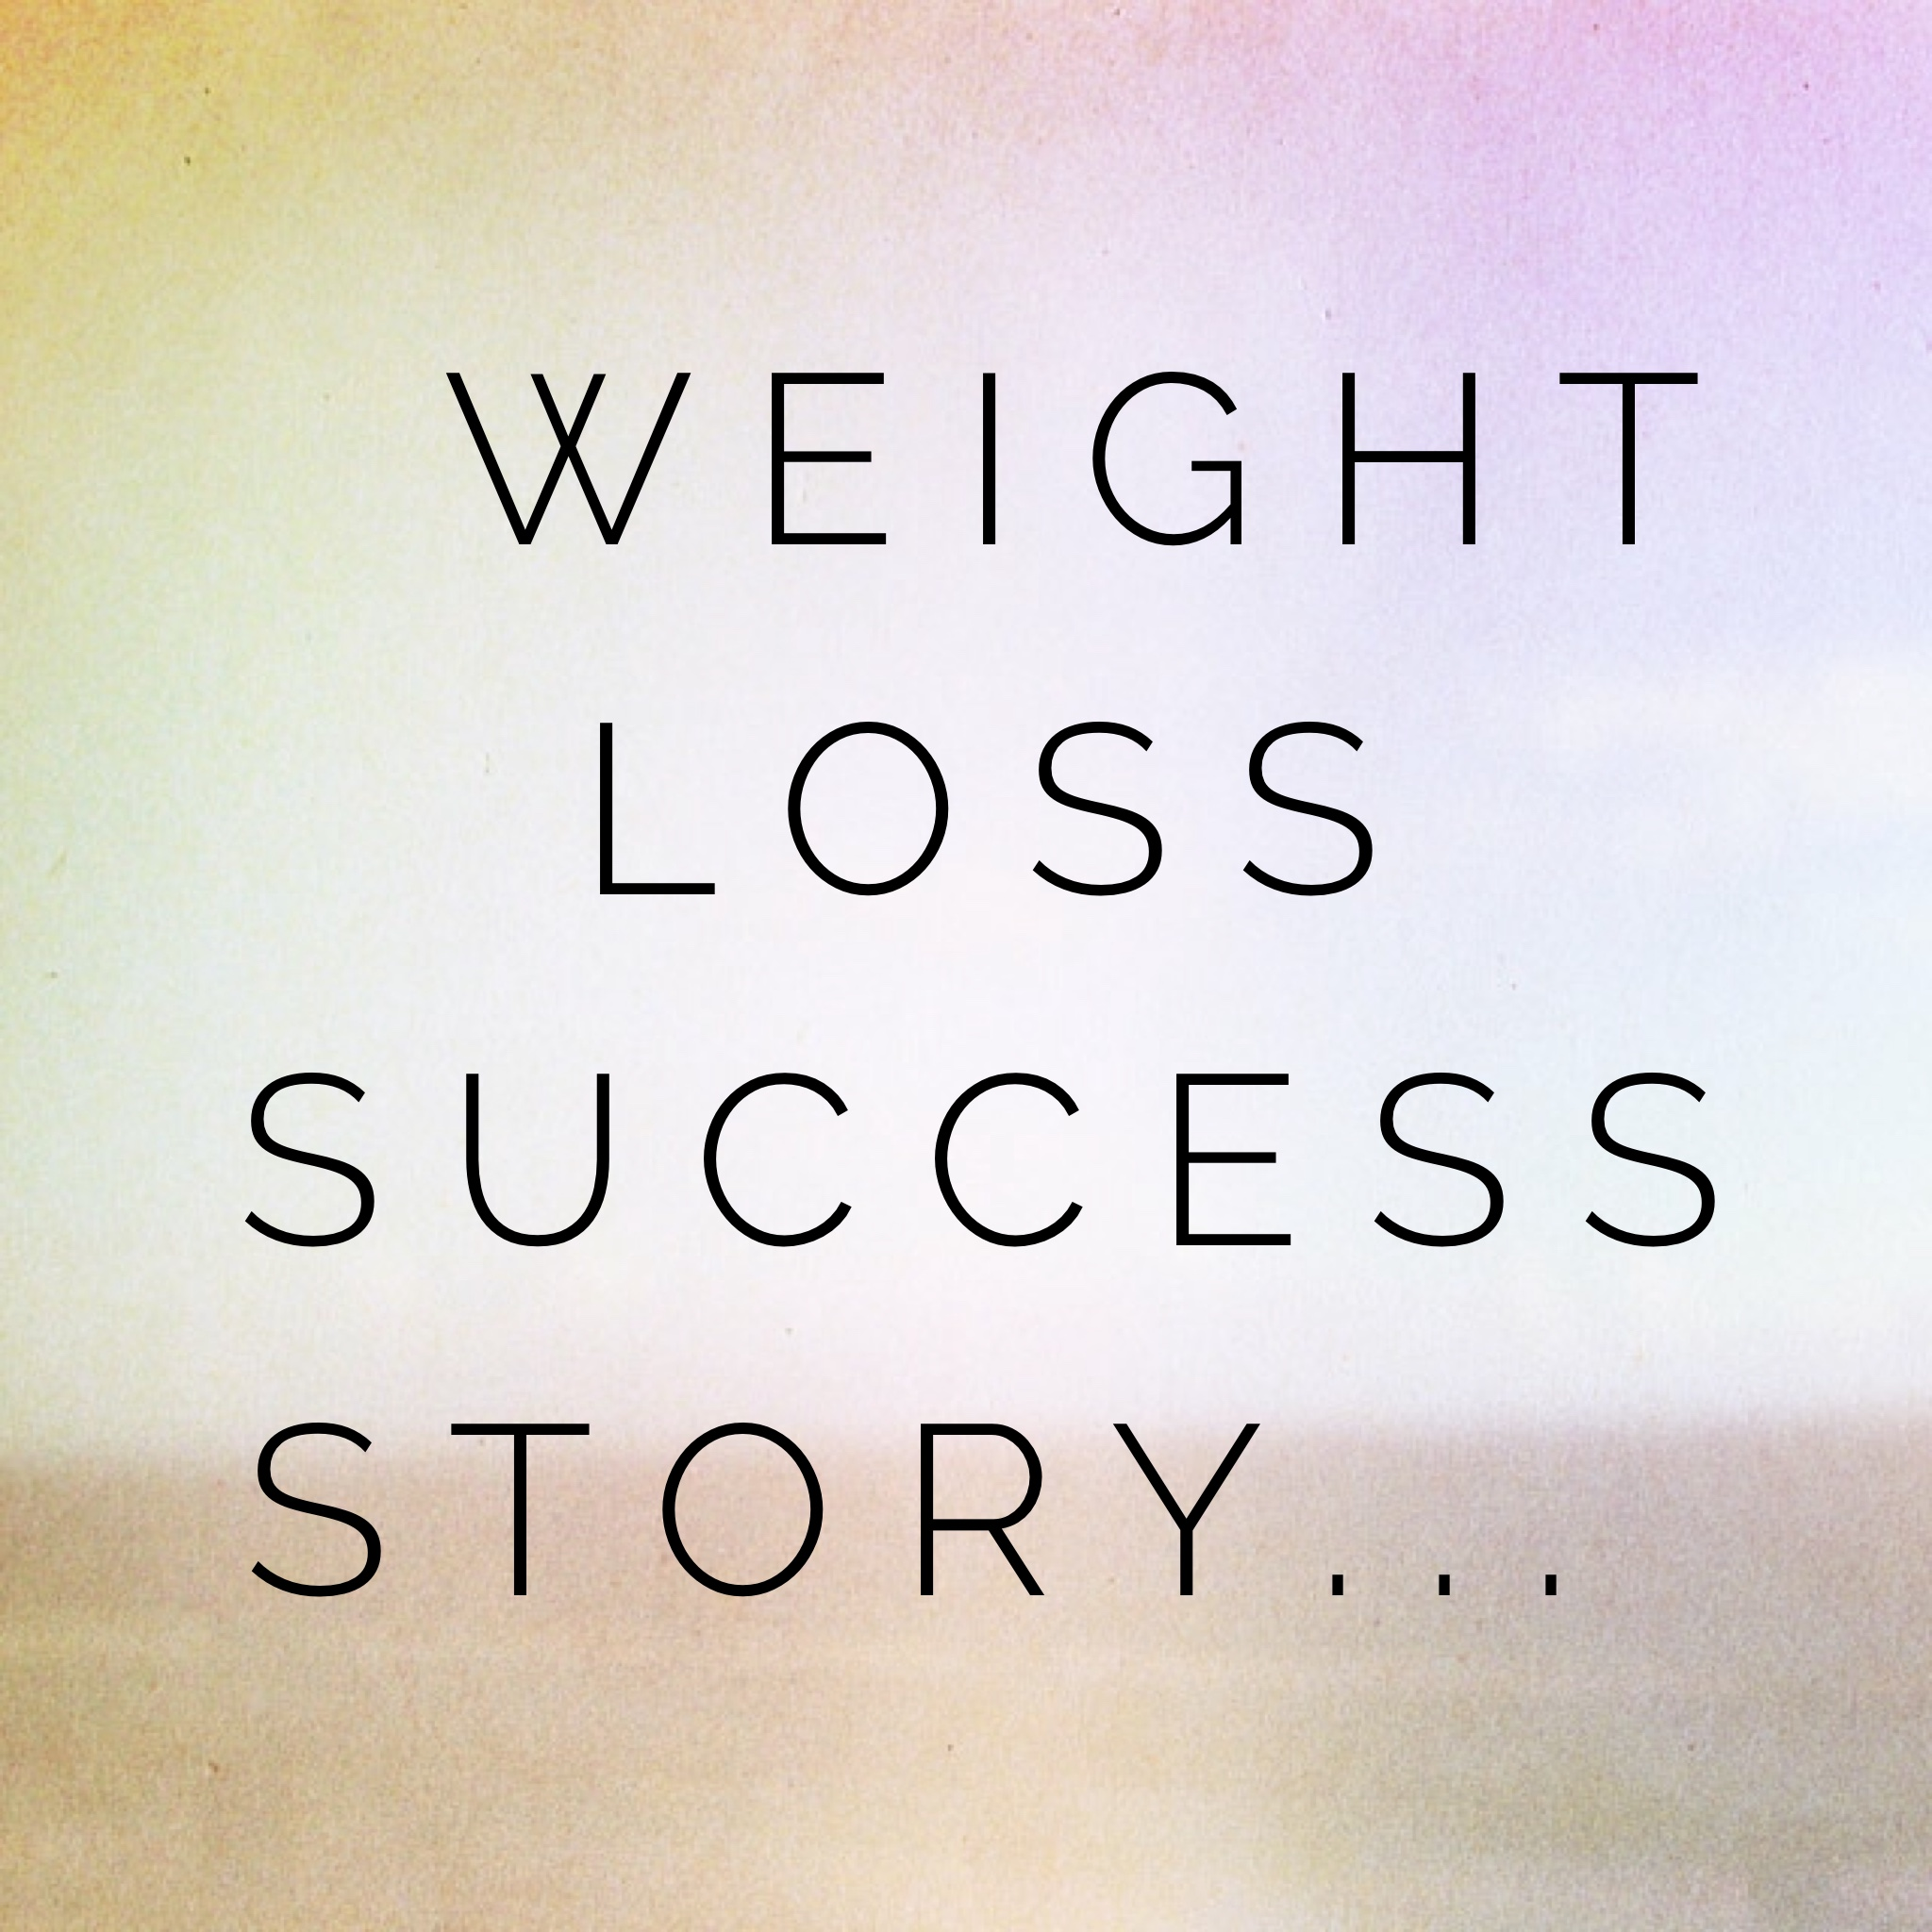 Elide's Weight Loss Success Story